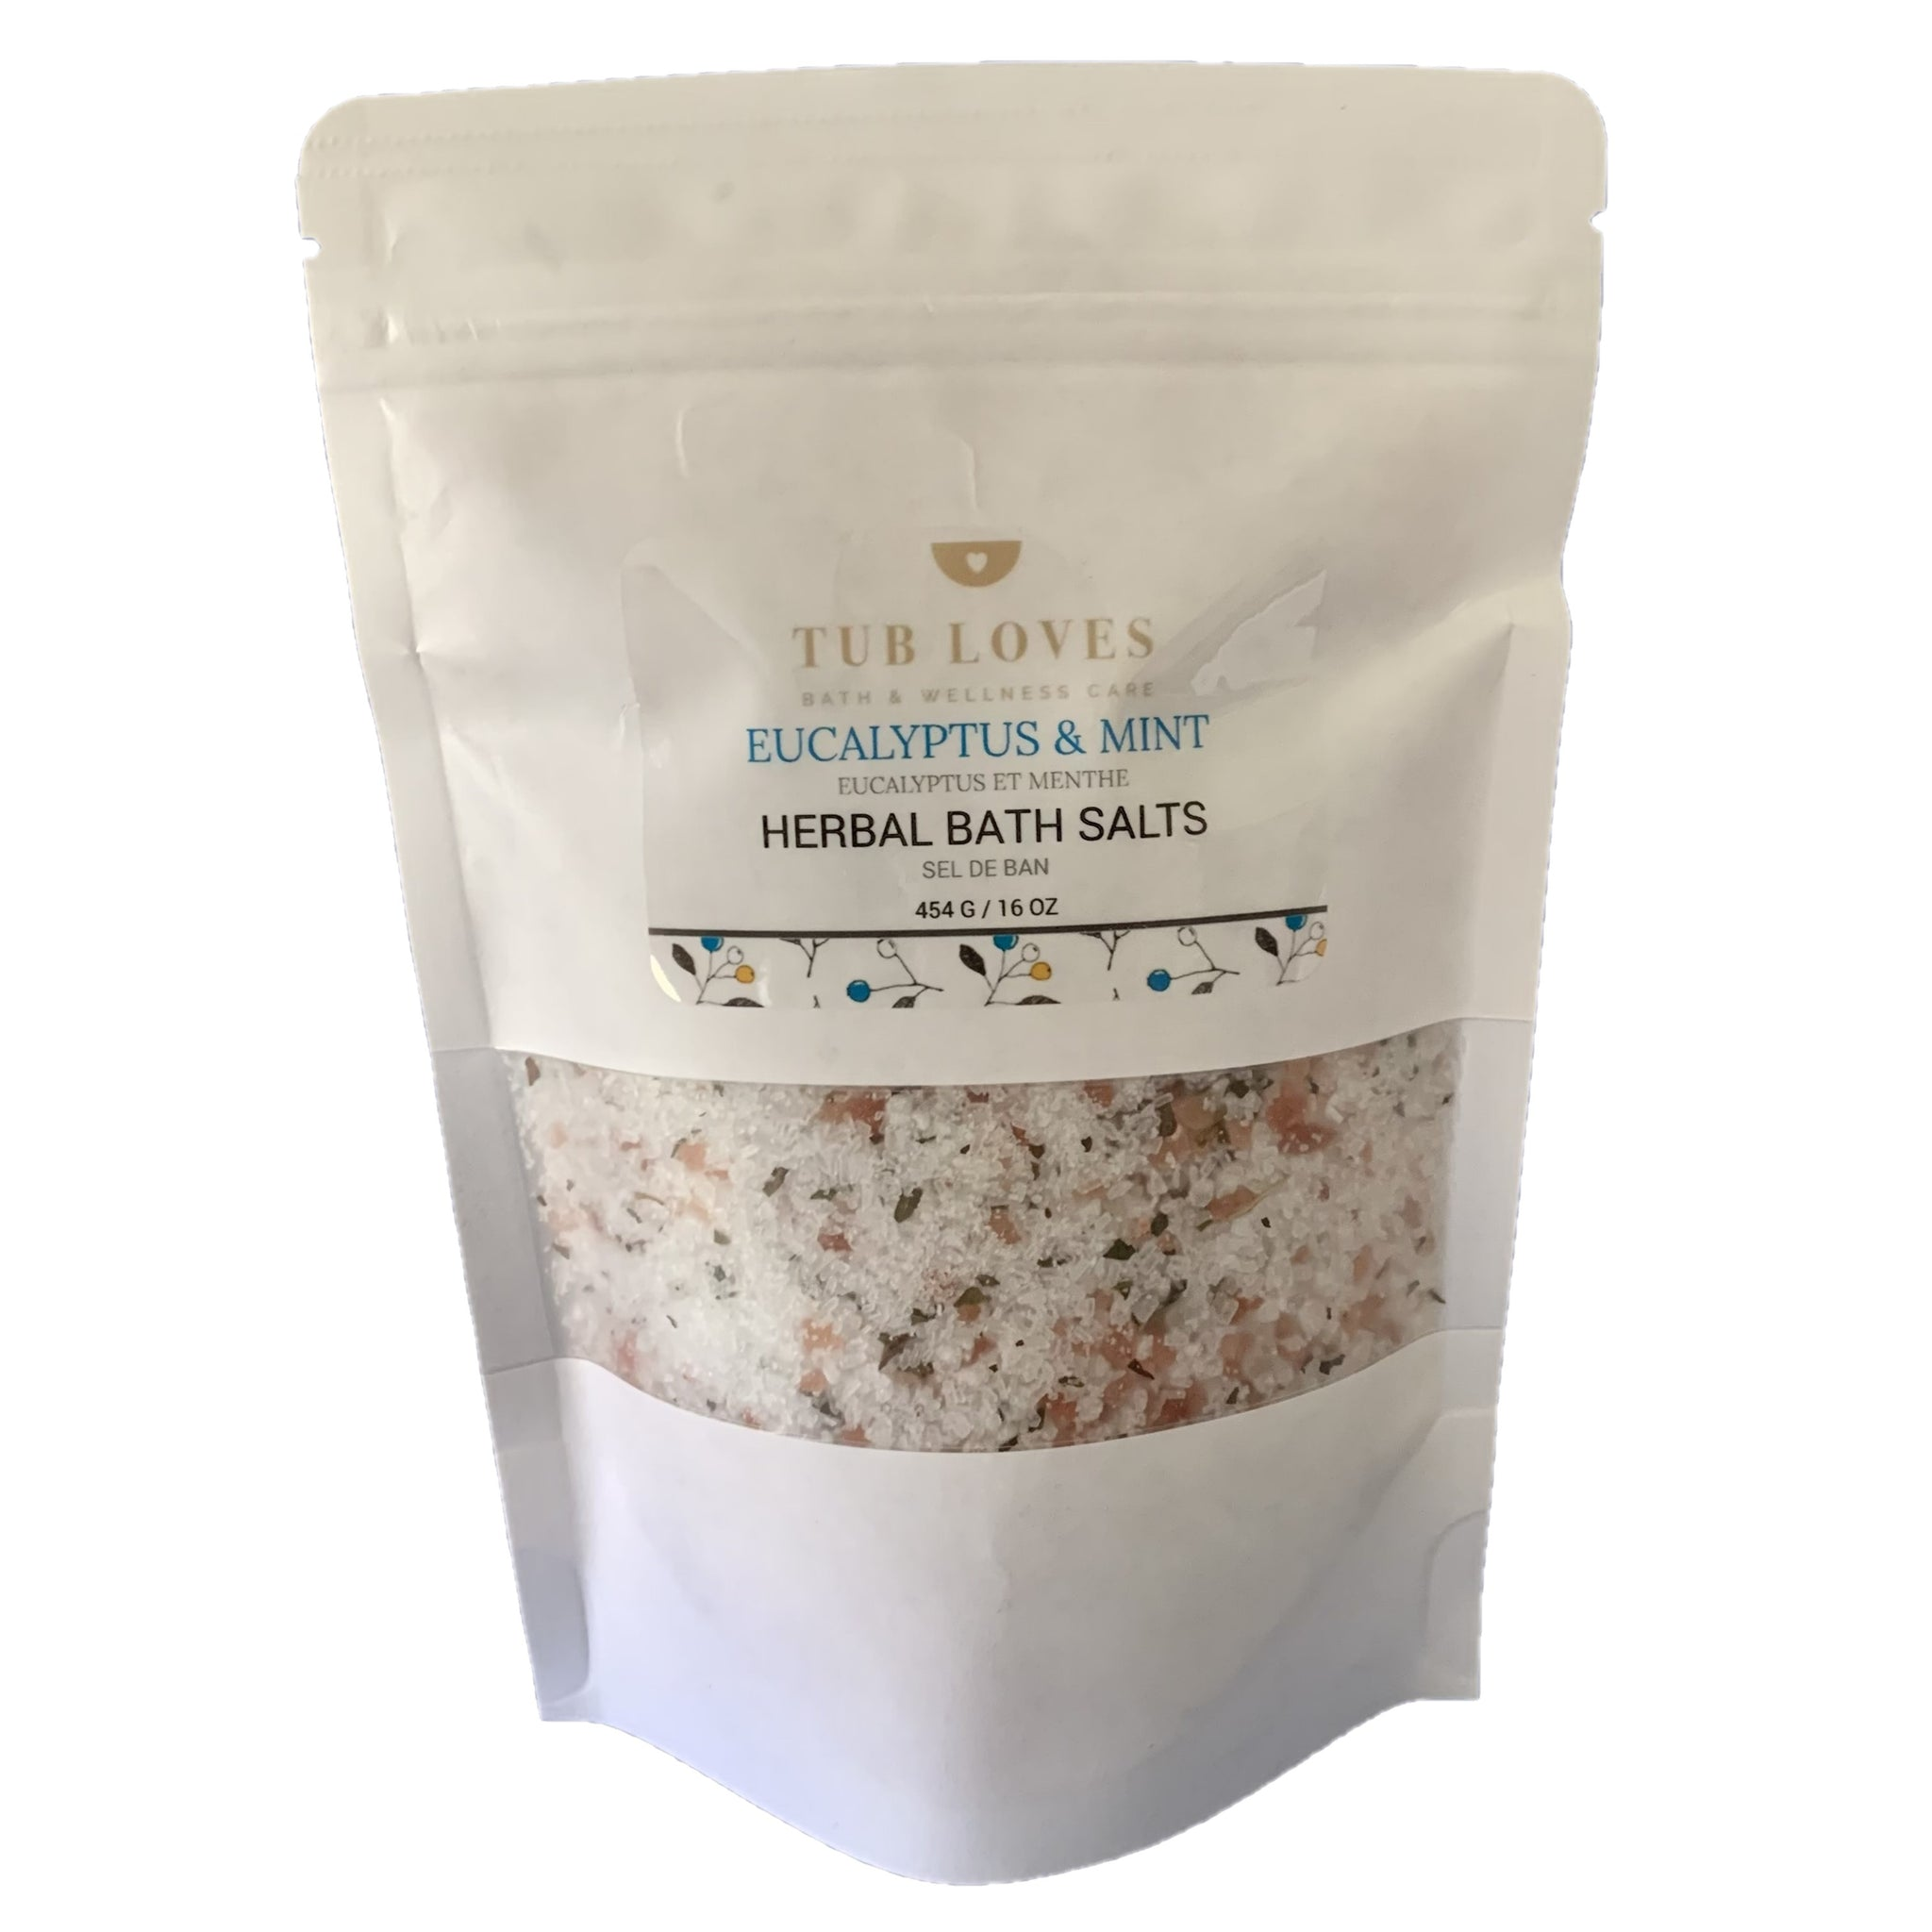 EUCALYPTUS & MINT - HERBAL BATH SALTS